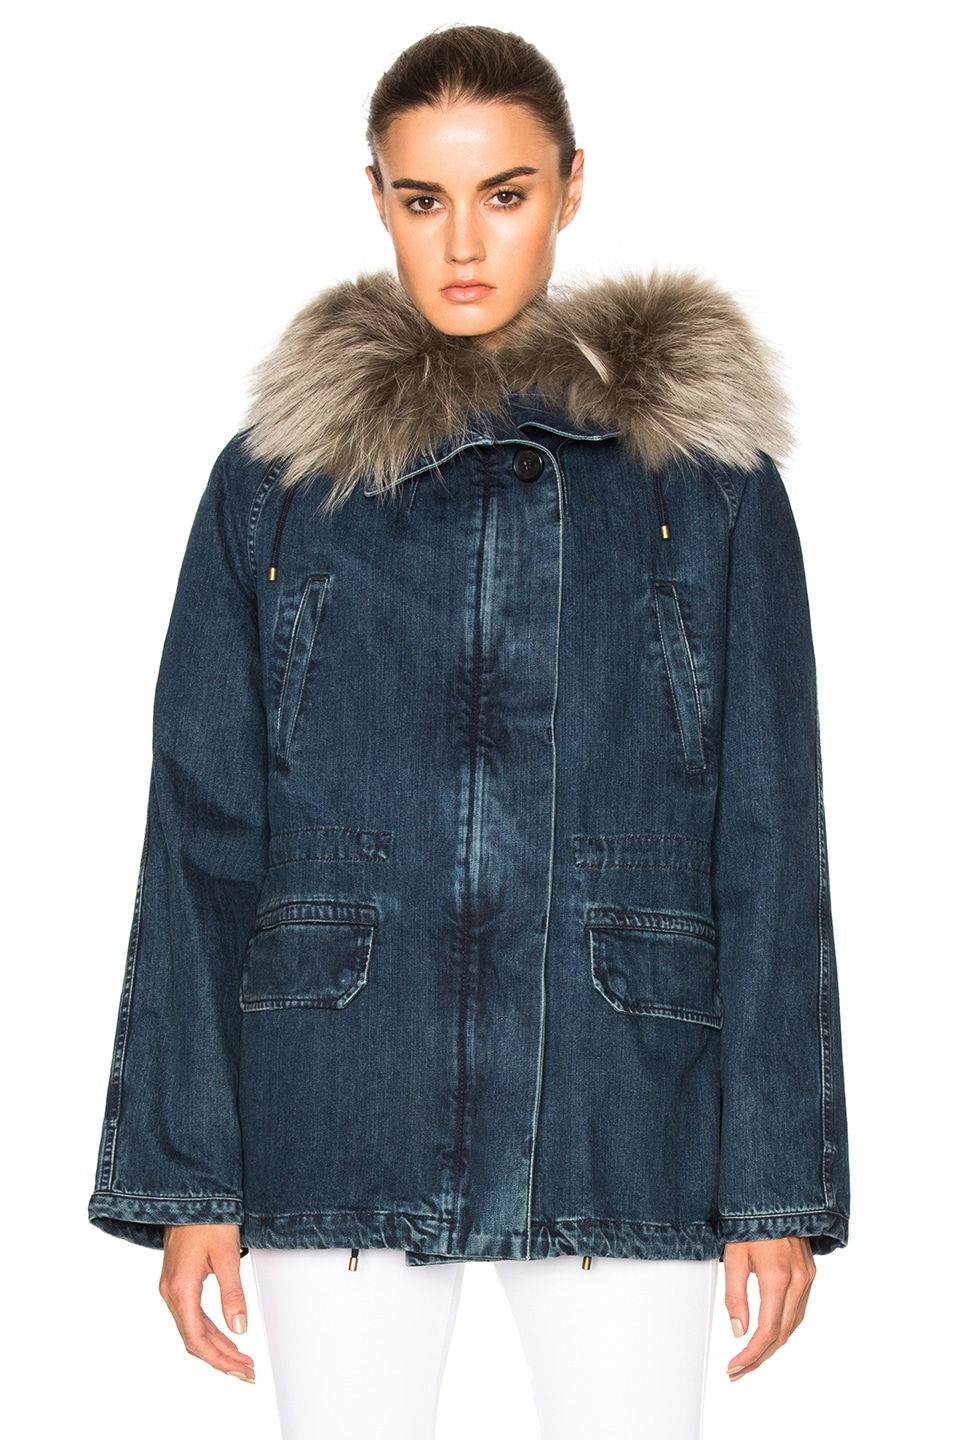 Image 1 of Army by Yves Salomon Denim Parka Jacket in Blue & Tank